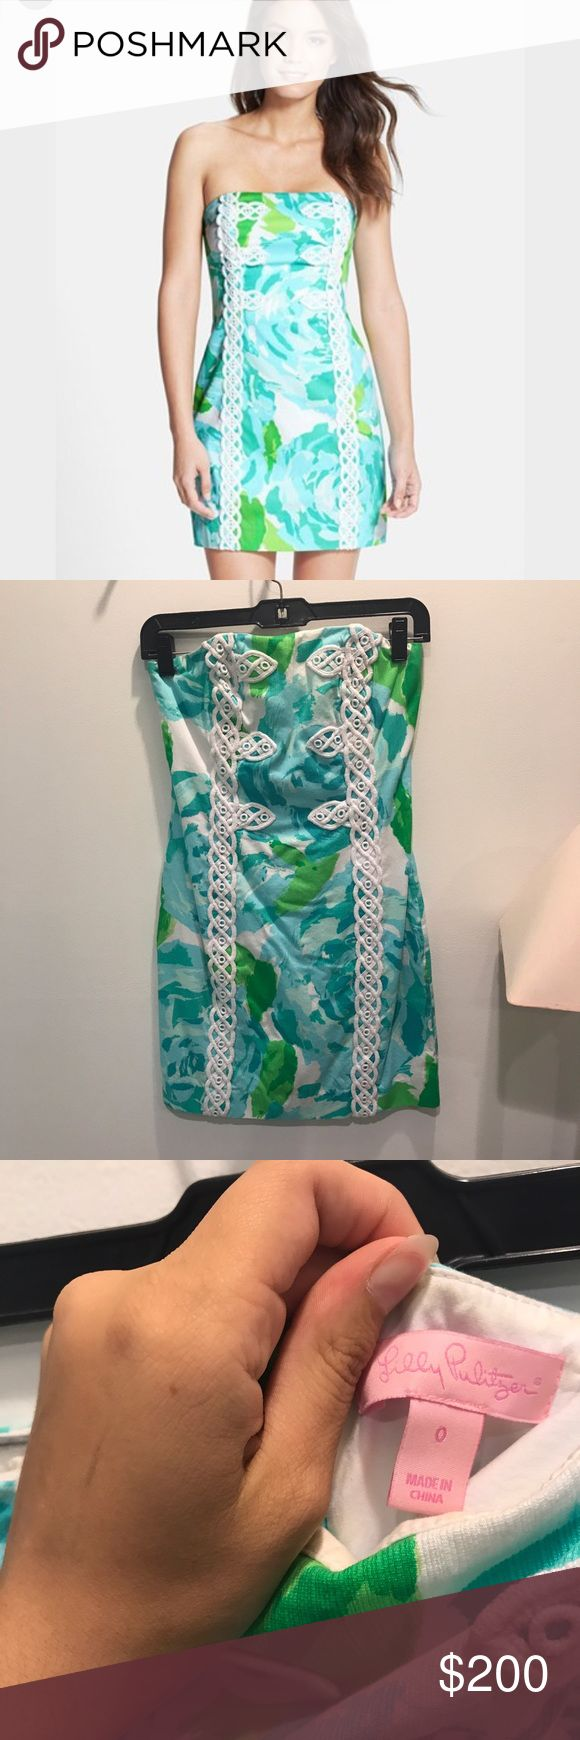 Lilly Pulitzer Tansy Dress Super cute. Worn once for Carolina cup. Shoot me an offer! Lilly Pulitzer Dresses Strapless